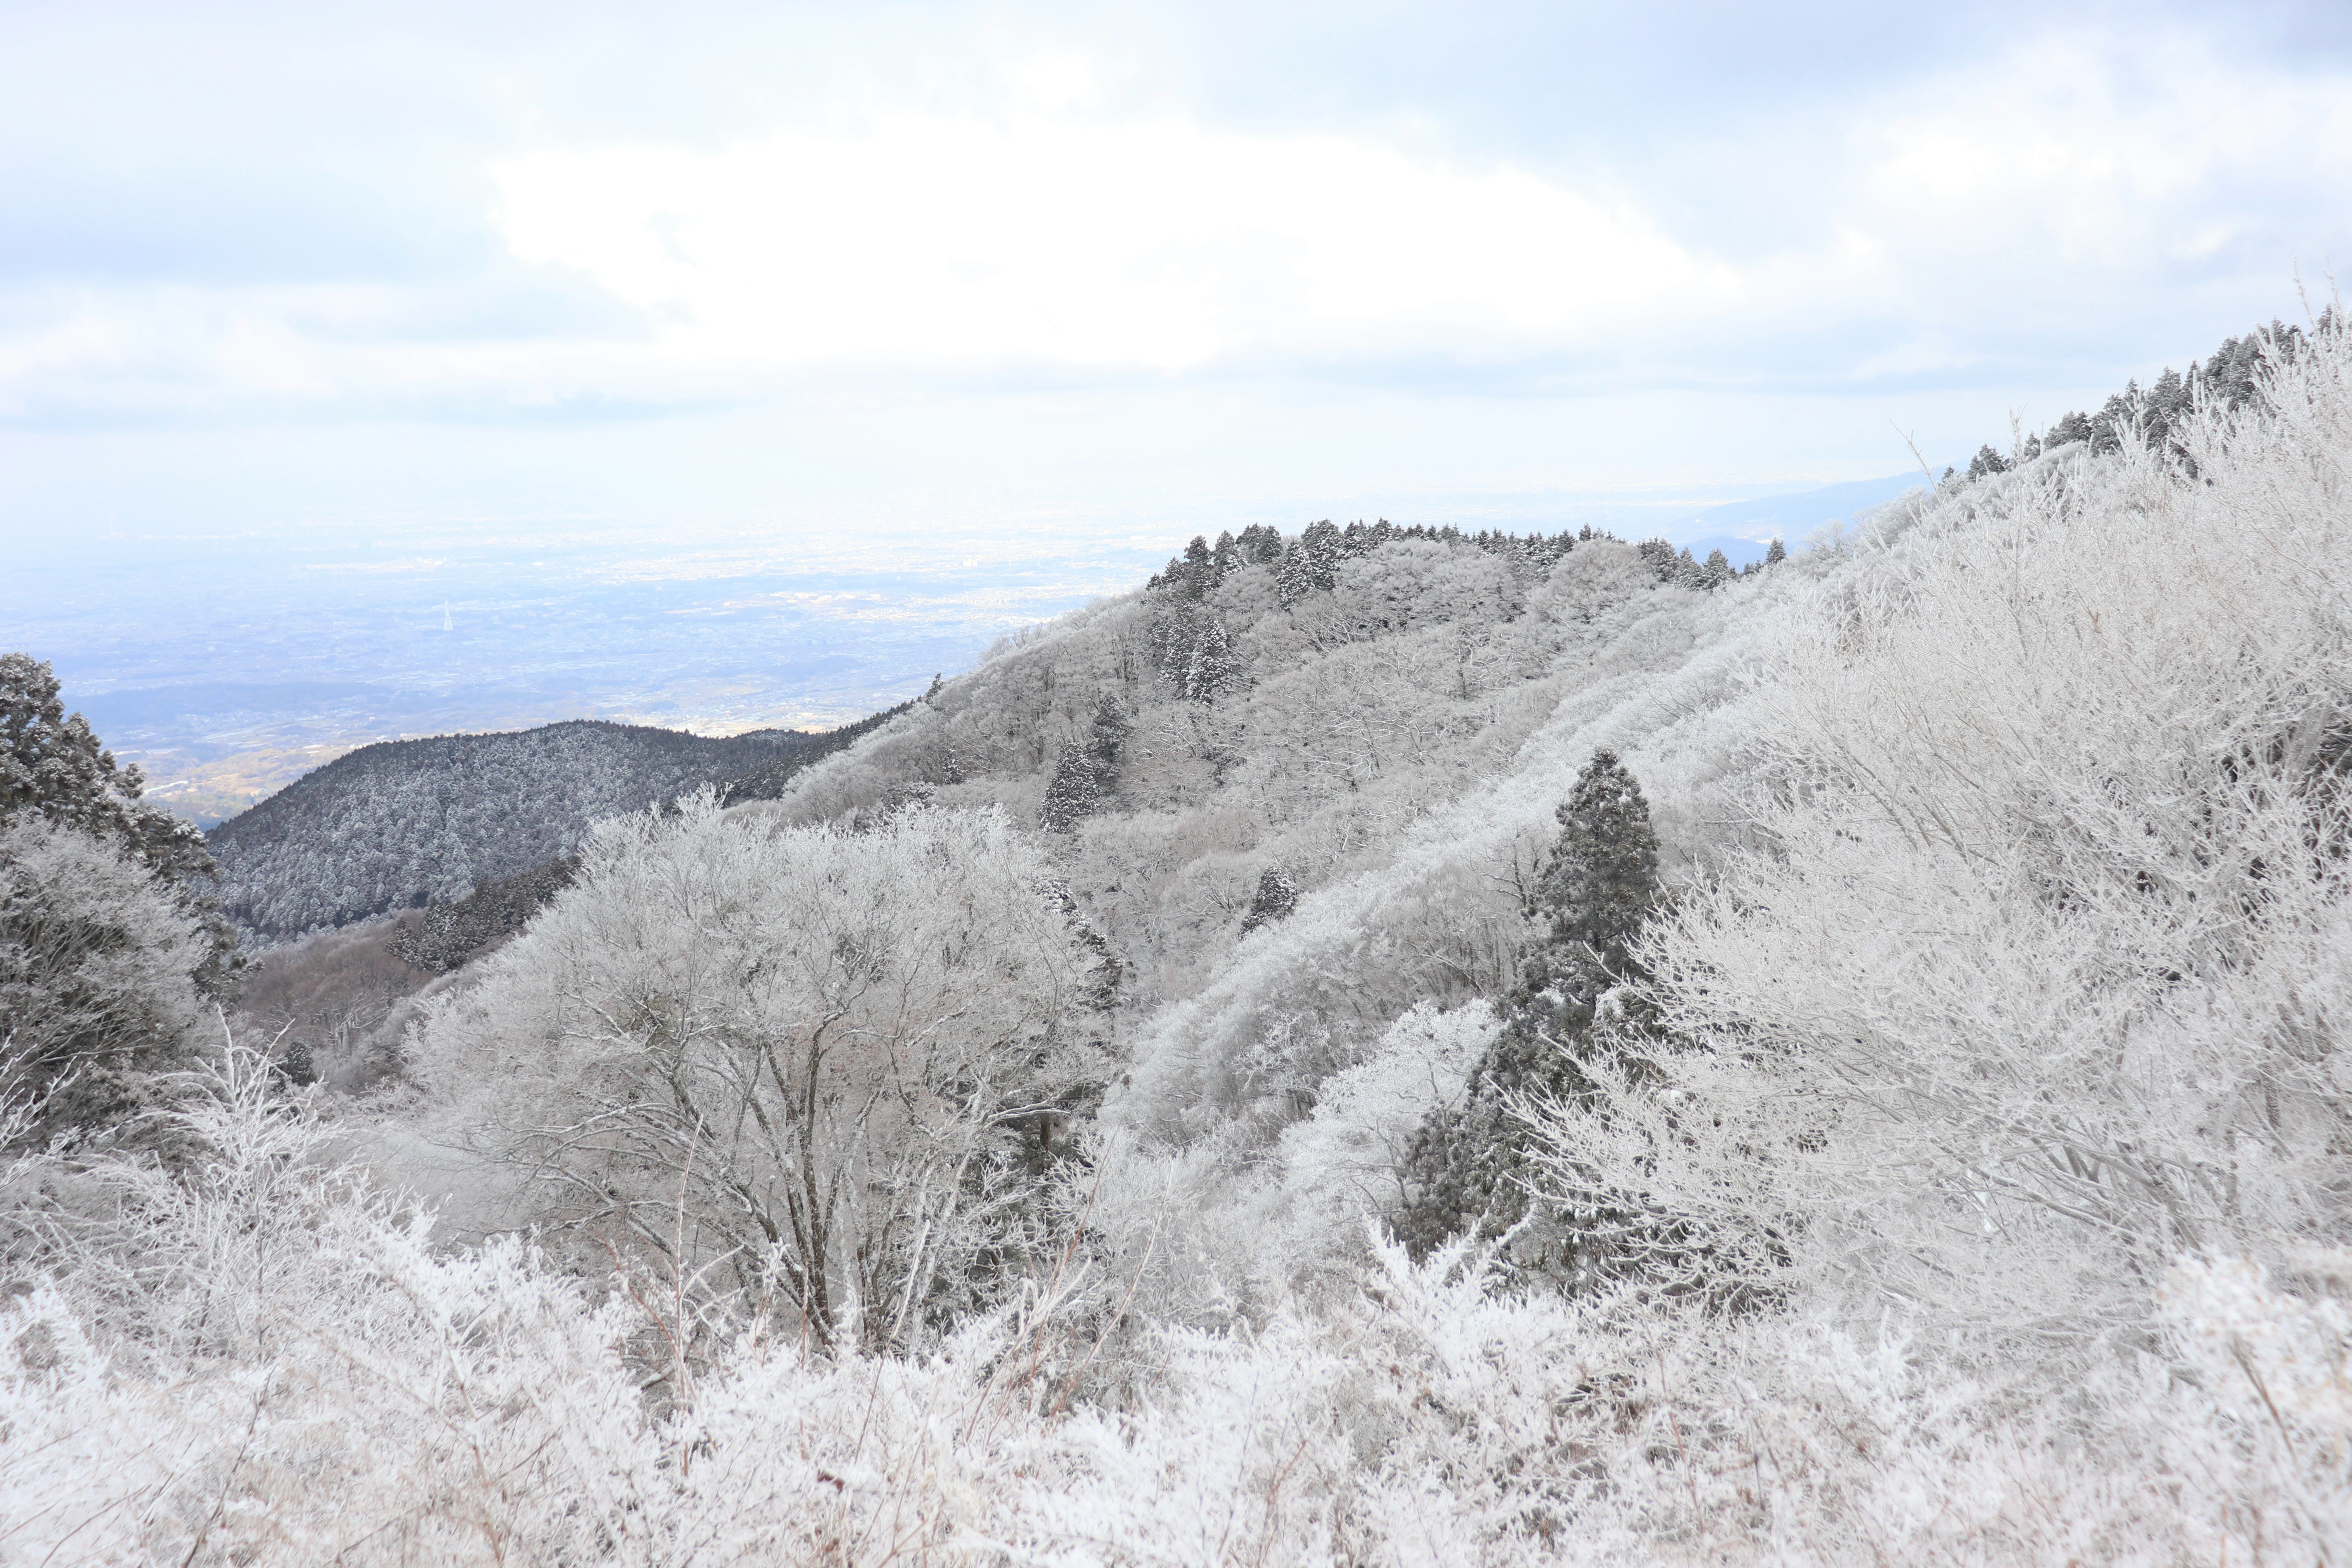 snowy view from the top of mount kongo